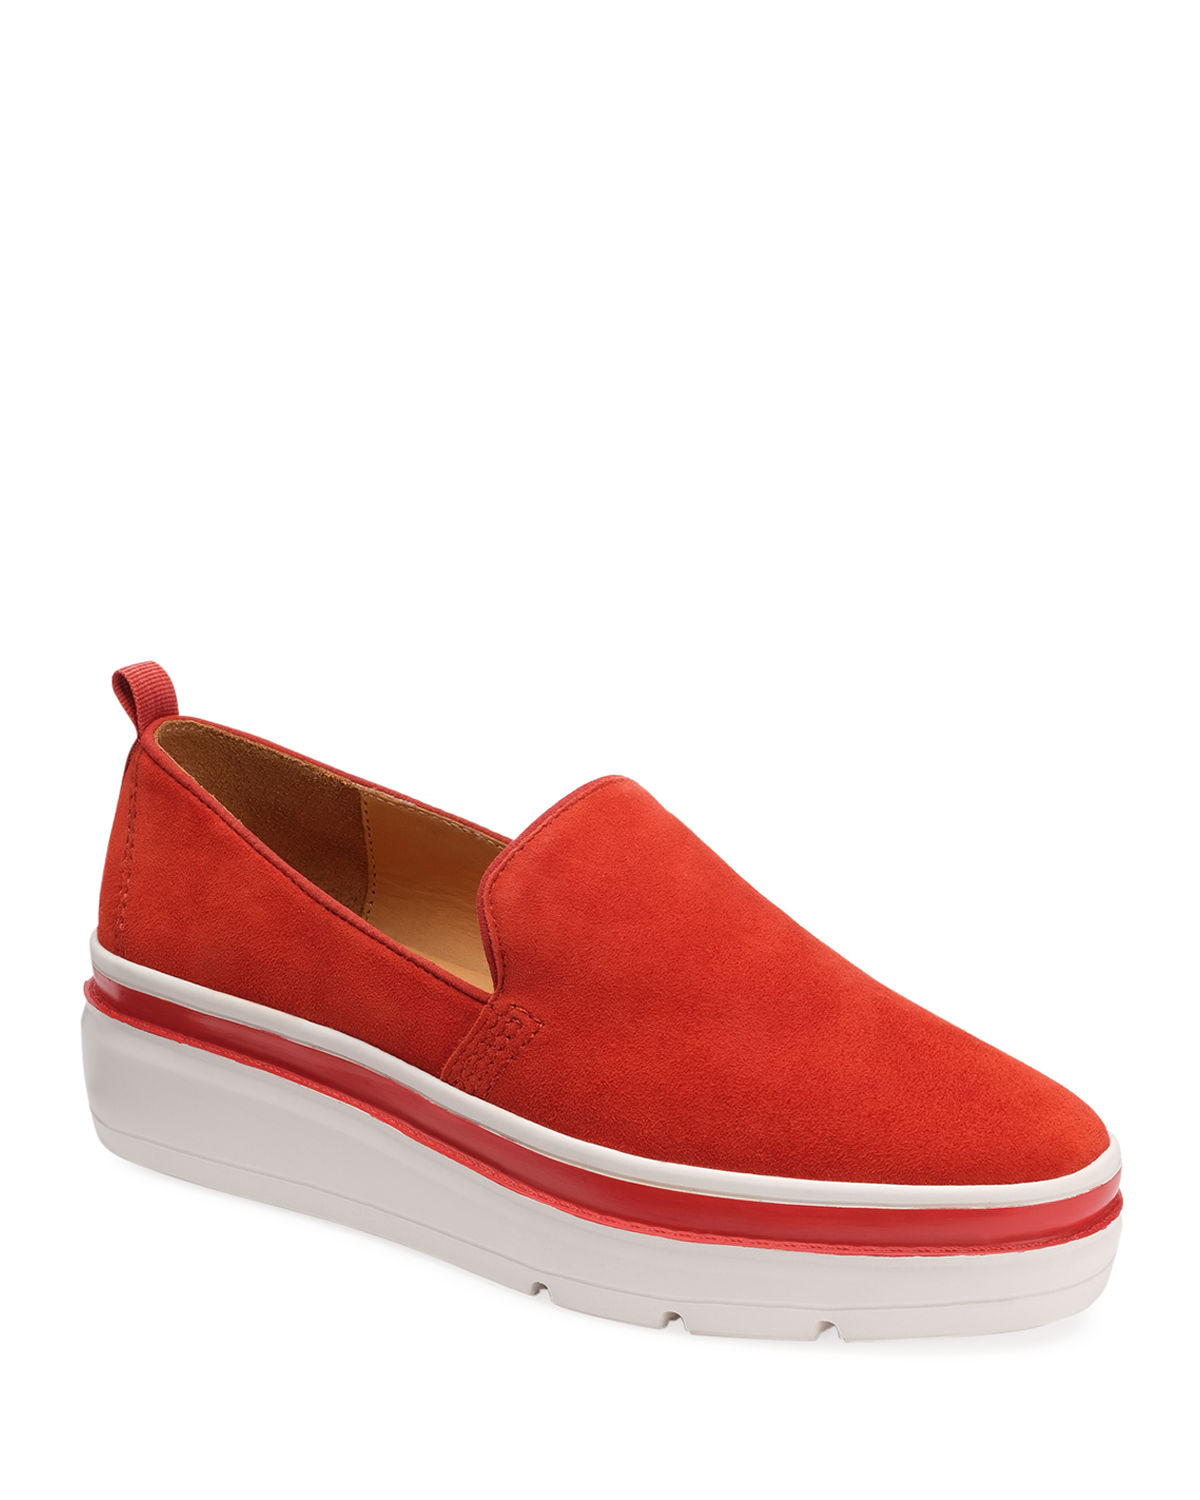 Bill Blass Sutton Suede Chunky Sneakers In Cherry Tomato